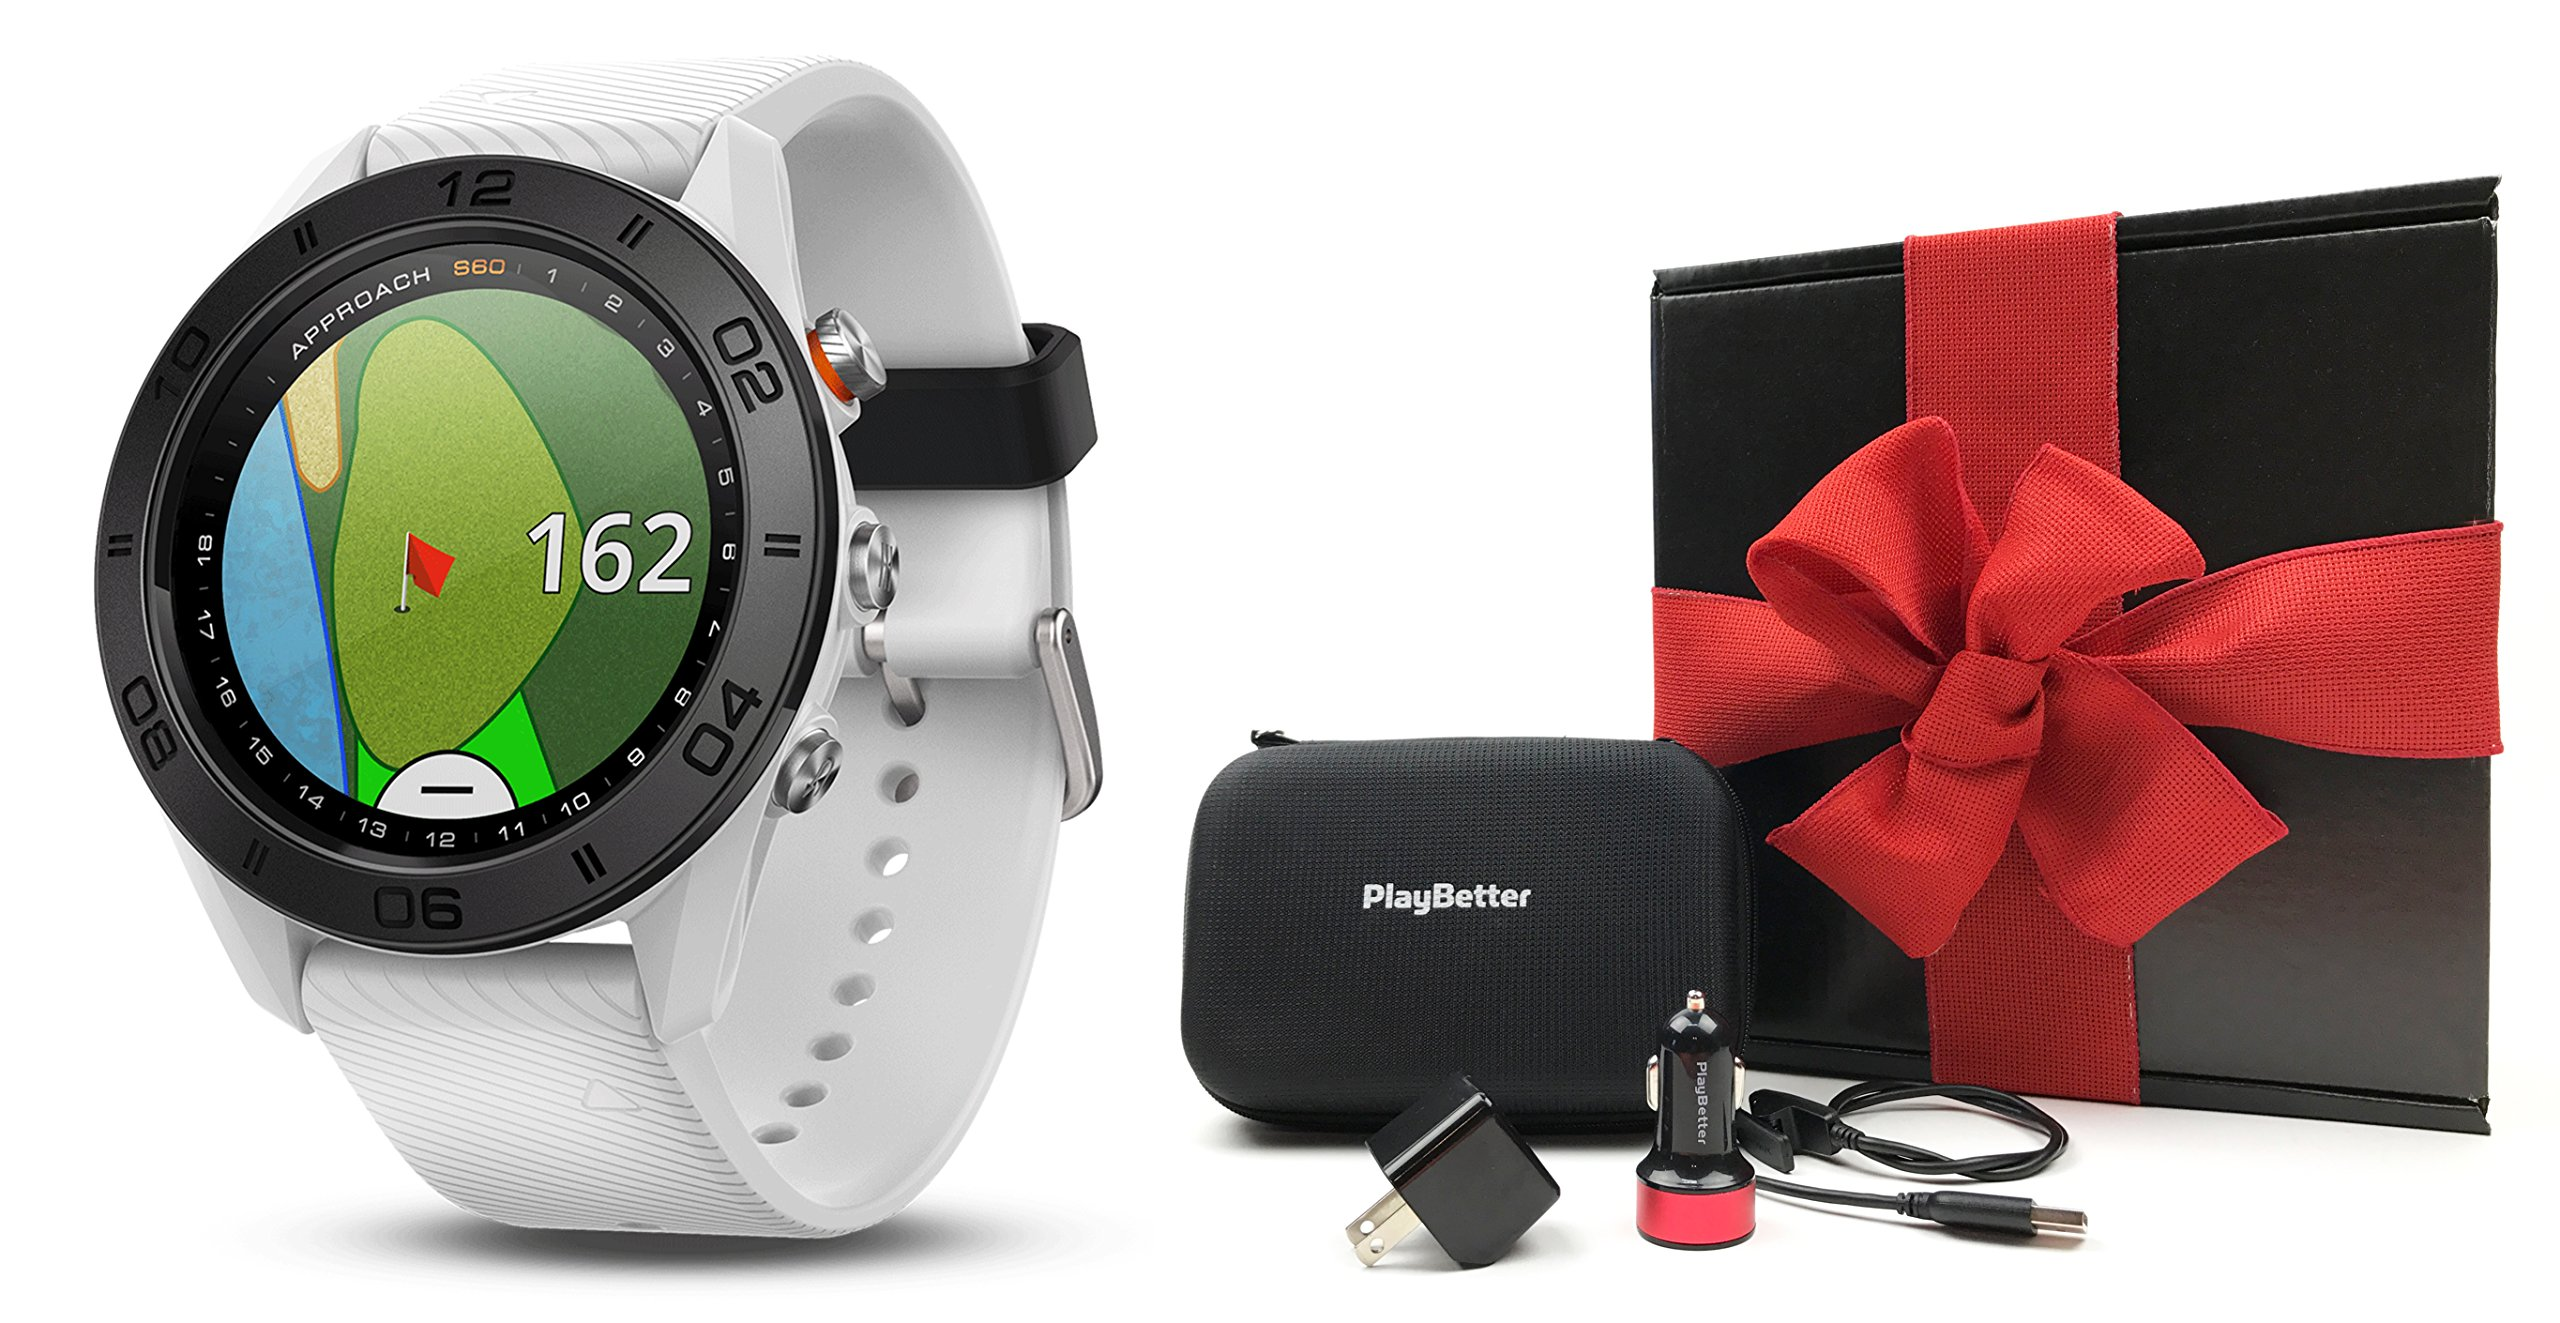 Garmin Approach S60 (White) Gift Box Bundle | Includes Multi-Sport Golf GPS Watch w/Activity Tracking, PlayBetter USB Car/Wall Charging Adapters & Protective Hard Case | Gift Box, Red Bow